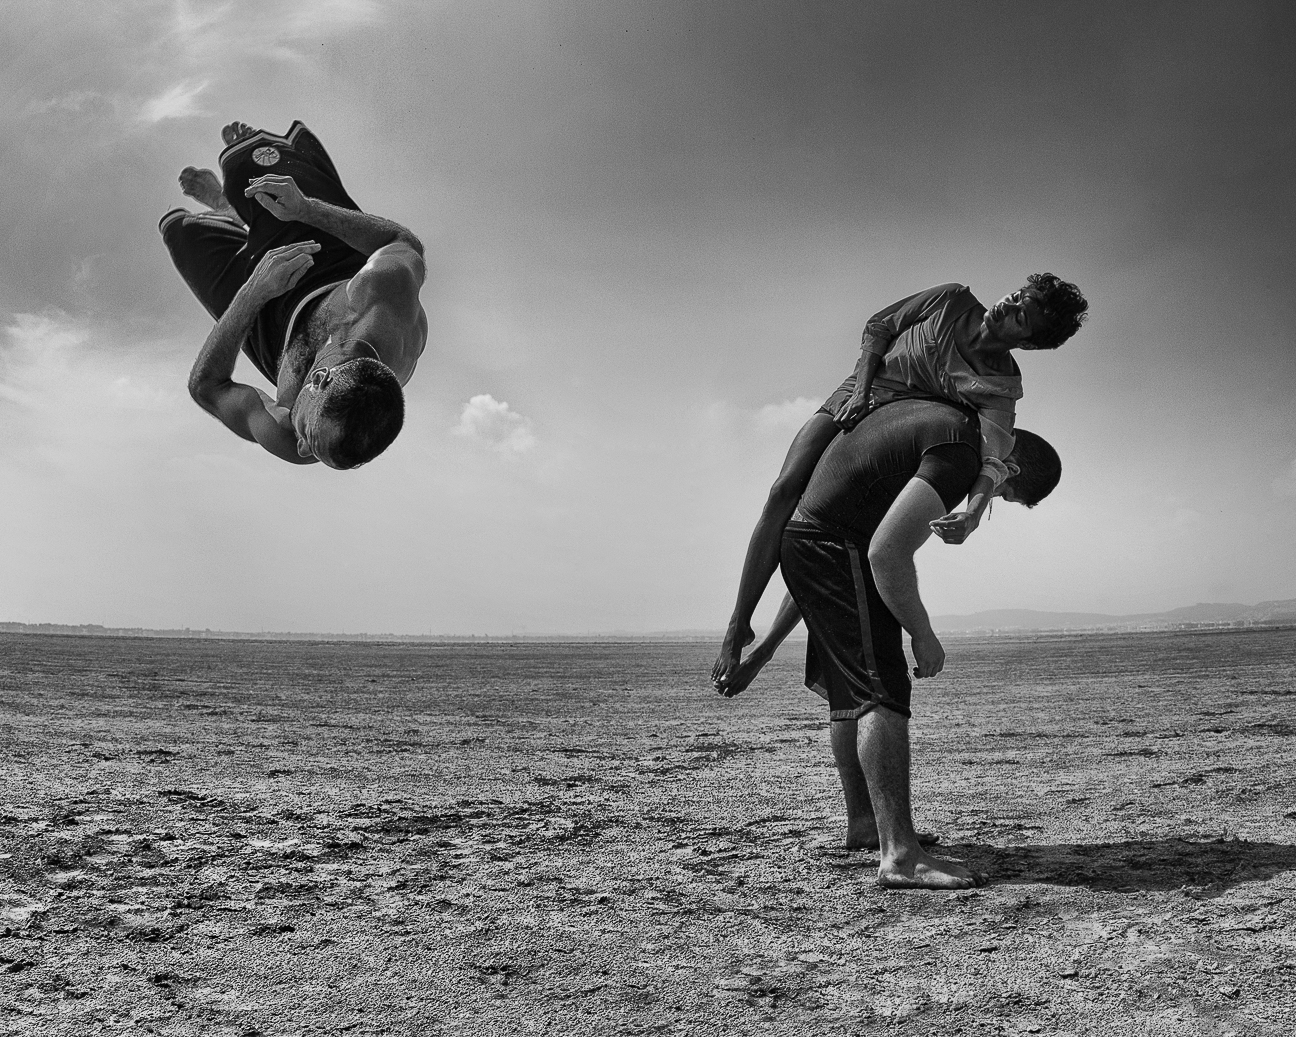 """One of my favourite photos I've ever taken. Dancers Sarah Cernaux, Nassim Feddal & Ali Brainais from """" Compagnie La Baraka """", with whom I toured with from 2013-2015. Shot in Tunisia while leading them in improvisation."""